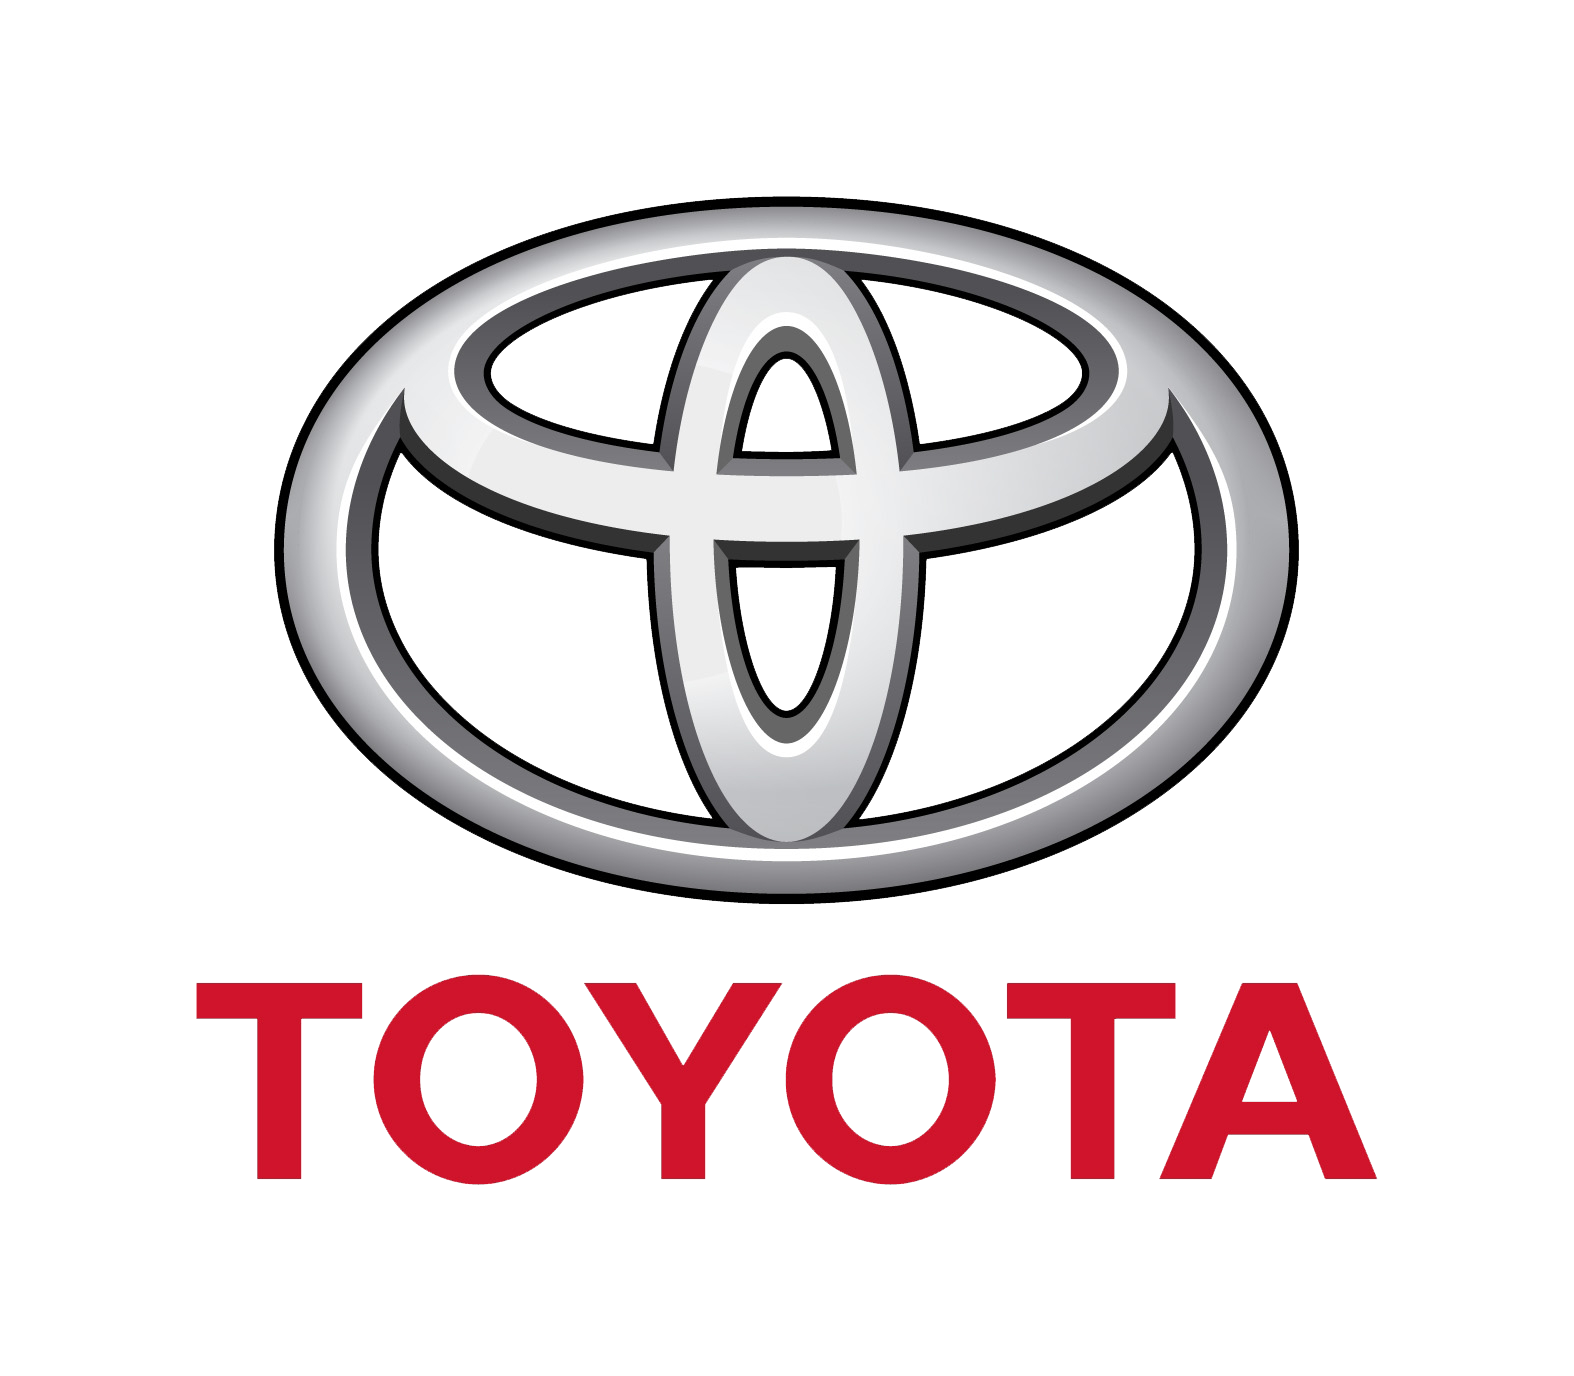 download toyota logo free png photo images and clipart freepngimg rh freepngimg com Shadow Warrior Logo Knuckles Logo